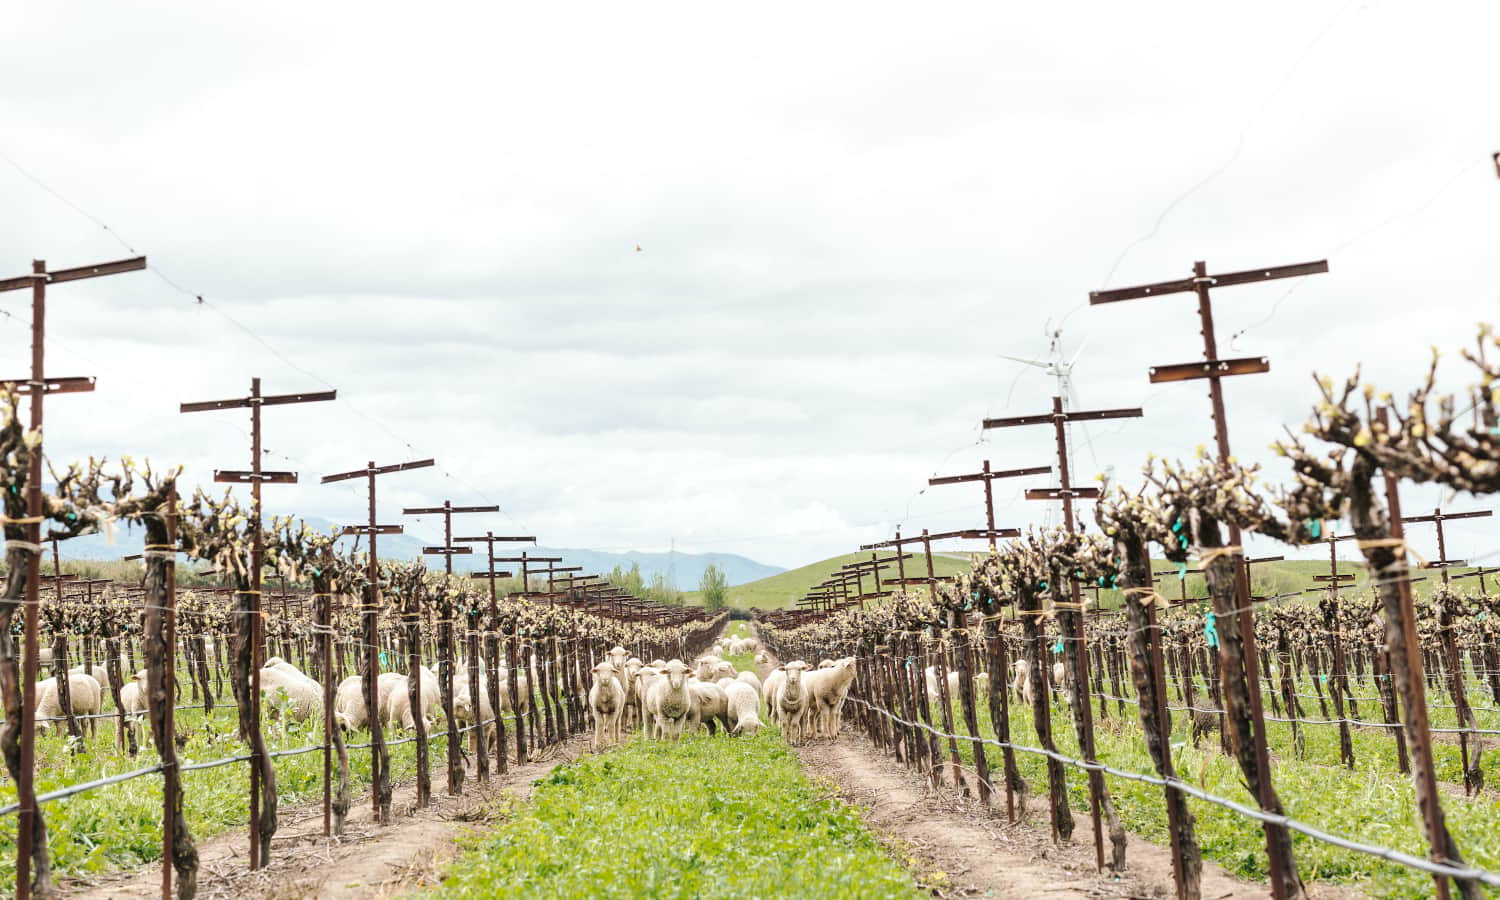 In this month's Niman Ranch Farmer Friday Feature, we talk with Jeanne McCormack of Dan McCormack Ranch about her family's lamb ranch in the Montezuma Hills.